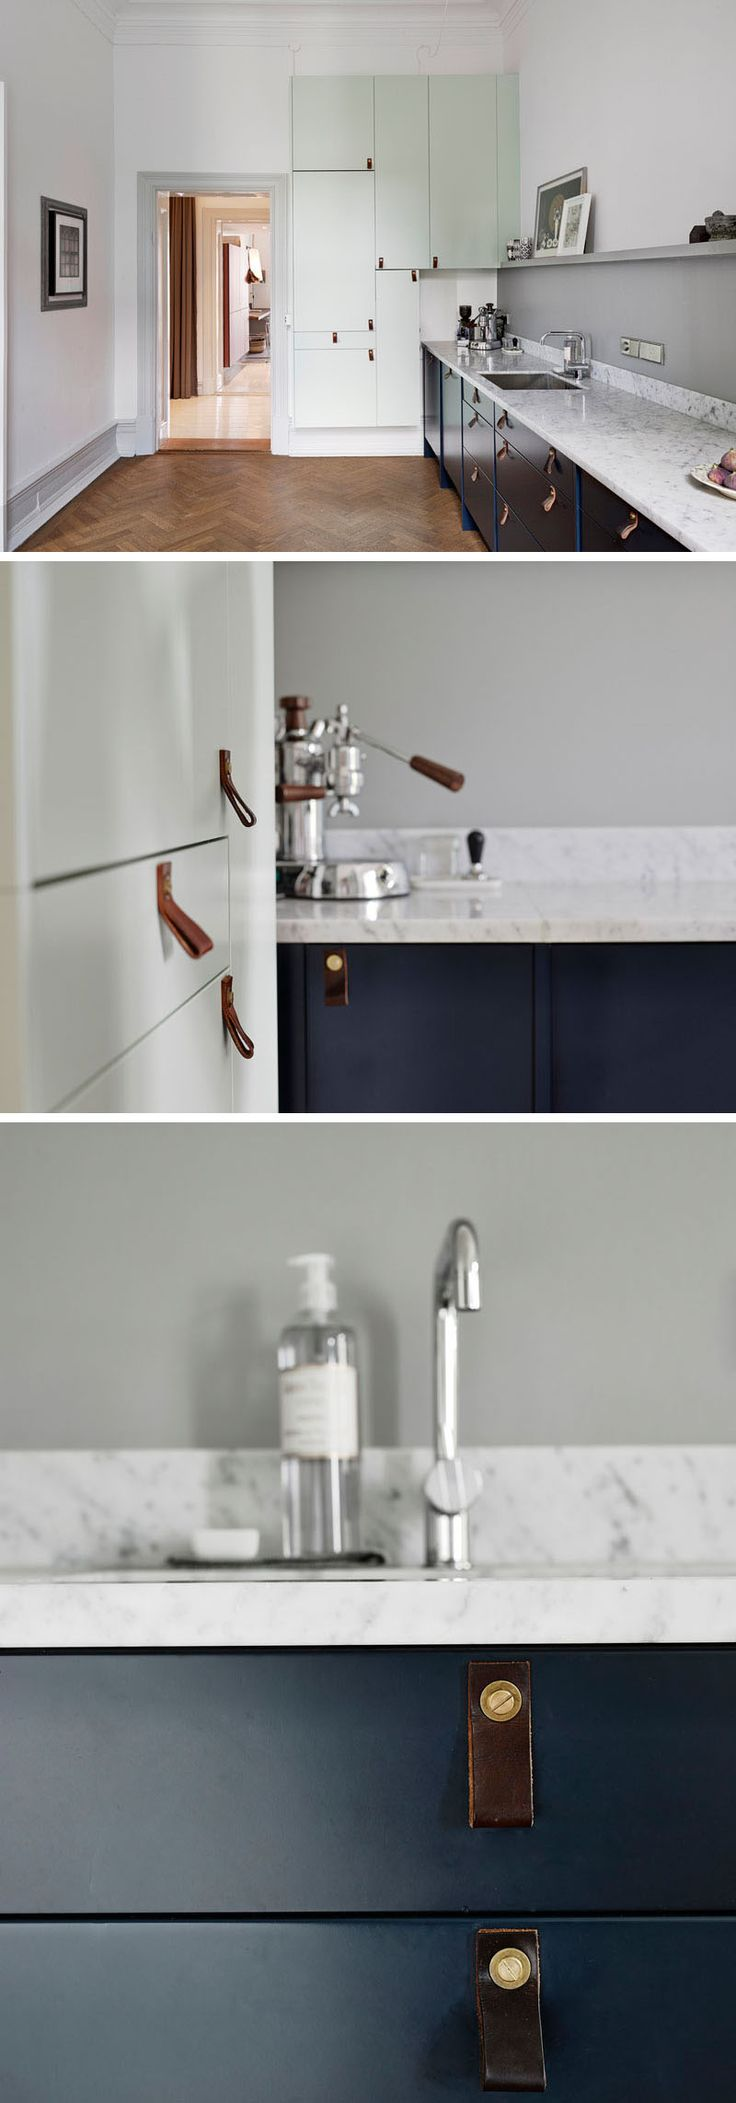 Kitchen Design Idea - Cabinet Hardware Alternatives // Create a Scandinavian look into your kitchen with leather cabinet pulls.